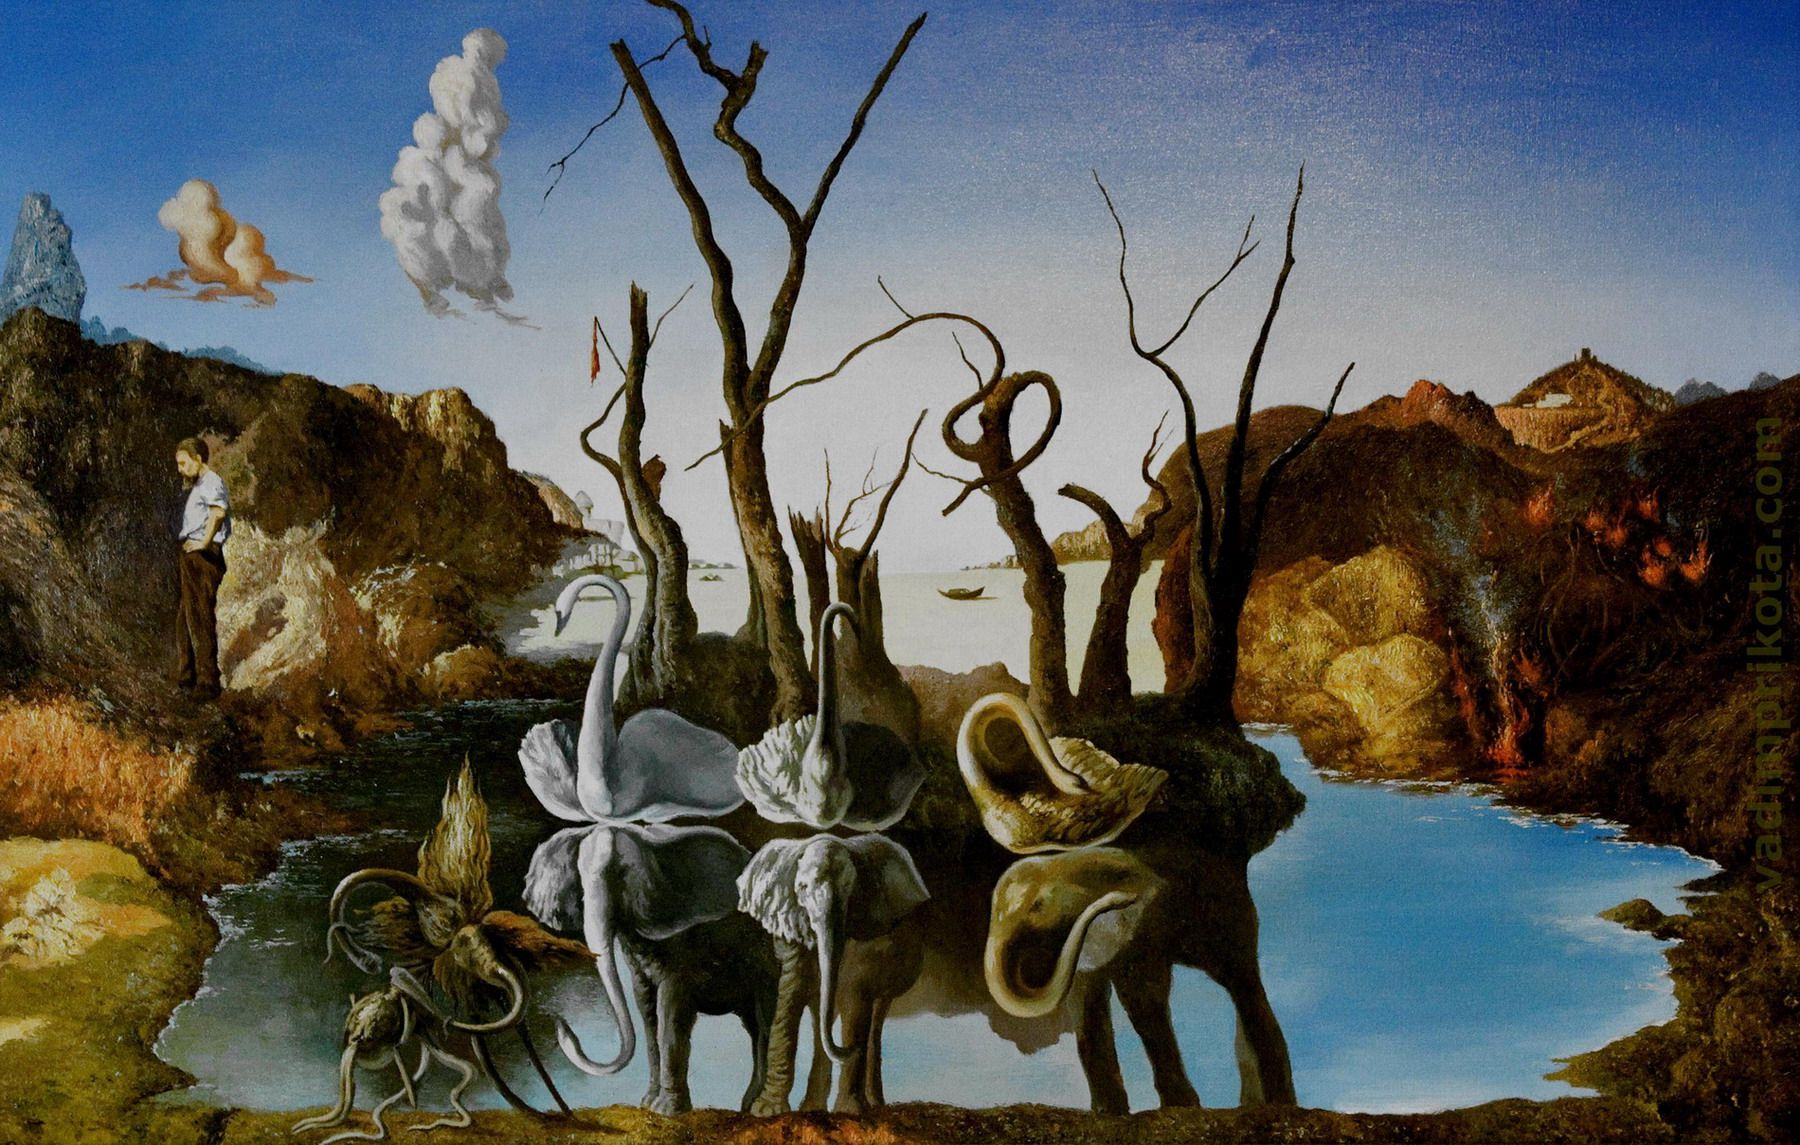 an analysis of dada and surrealism as influence of sigmund freud